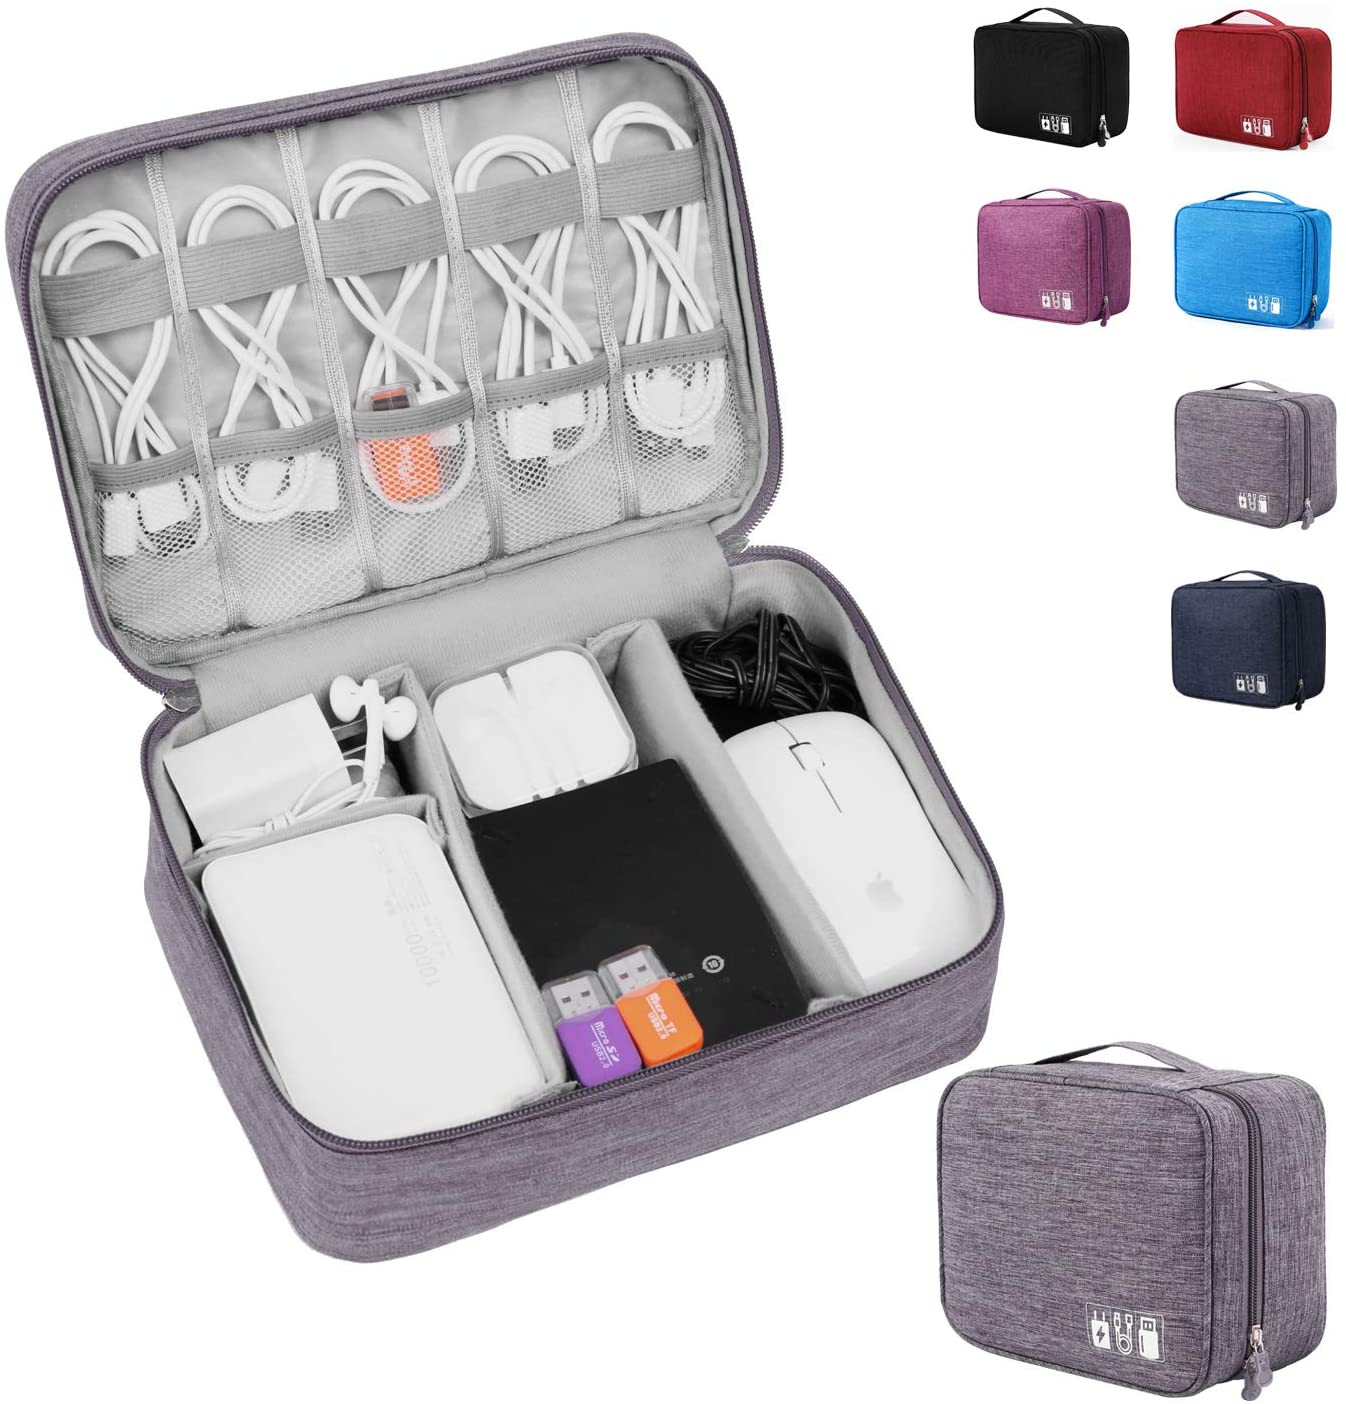 An open bag to organise electronics with various color options on the side.